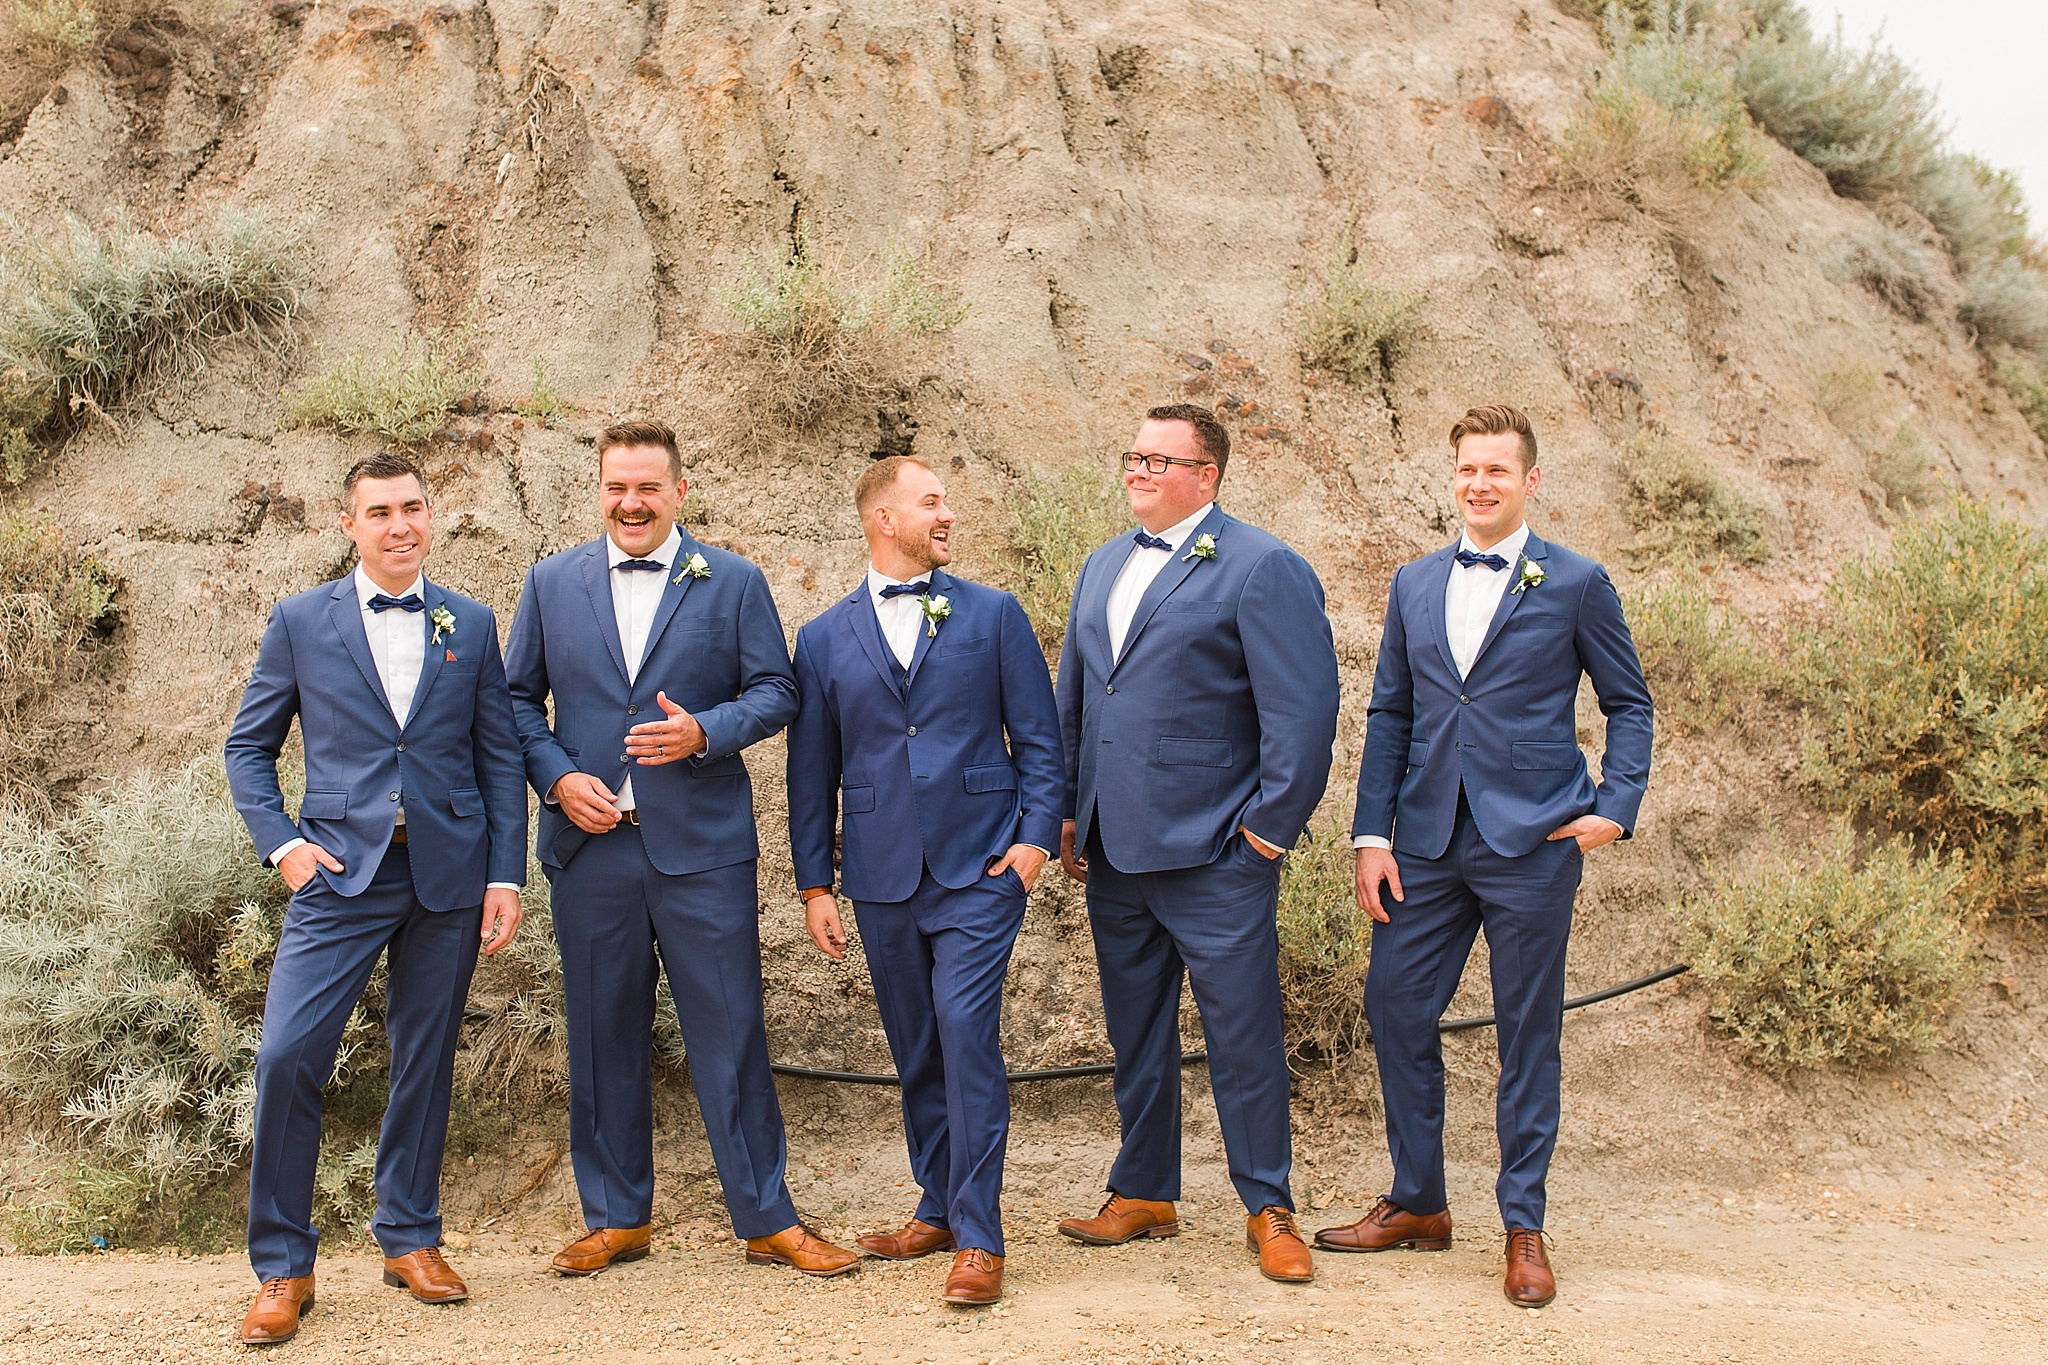 drumheller wedding113.JPG